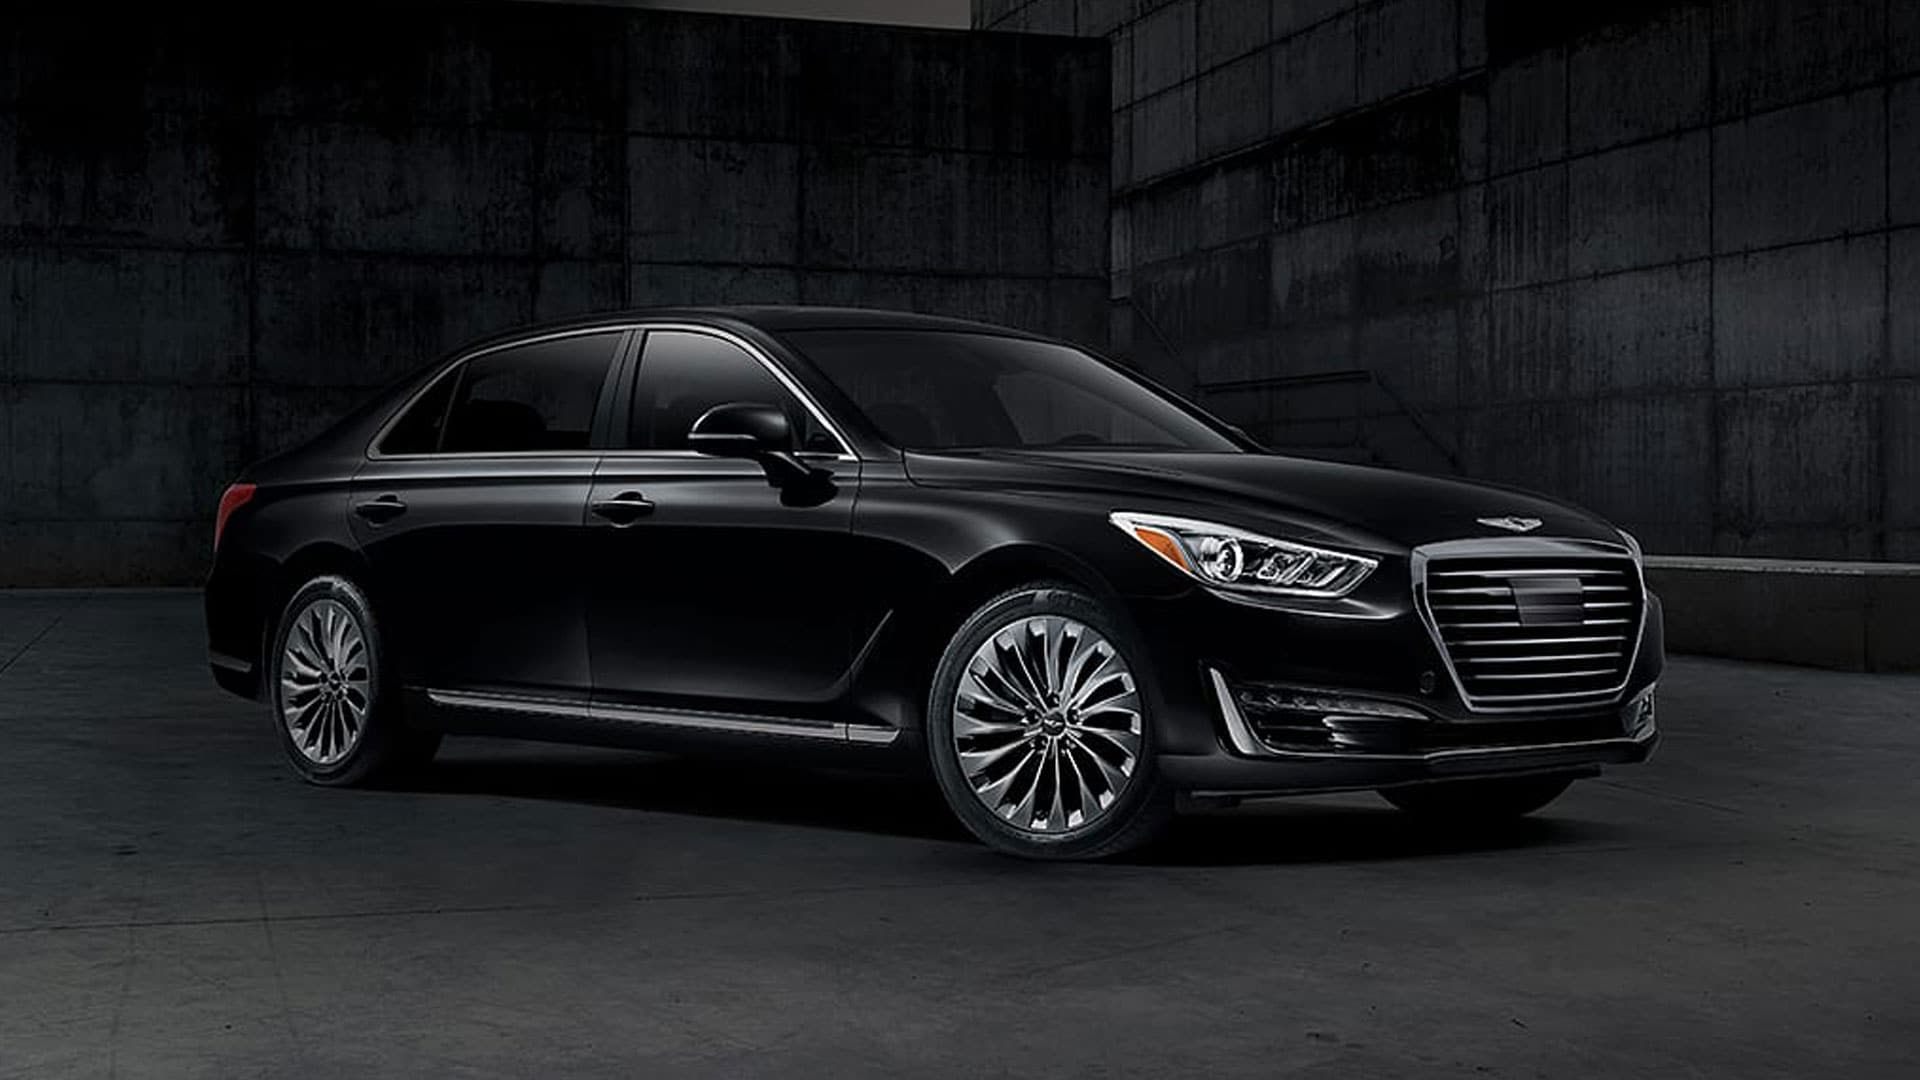 2019 Genesis G90 vs 2019 Lincoln Continental: Safety Features